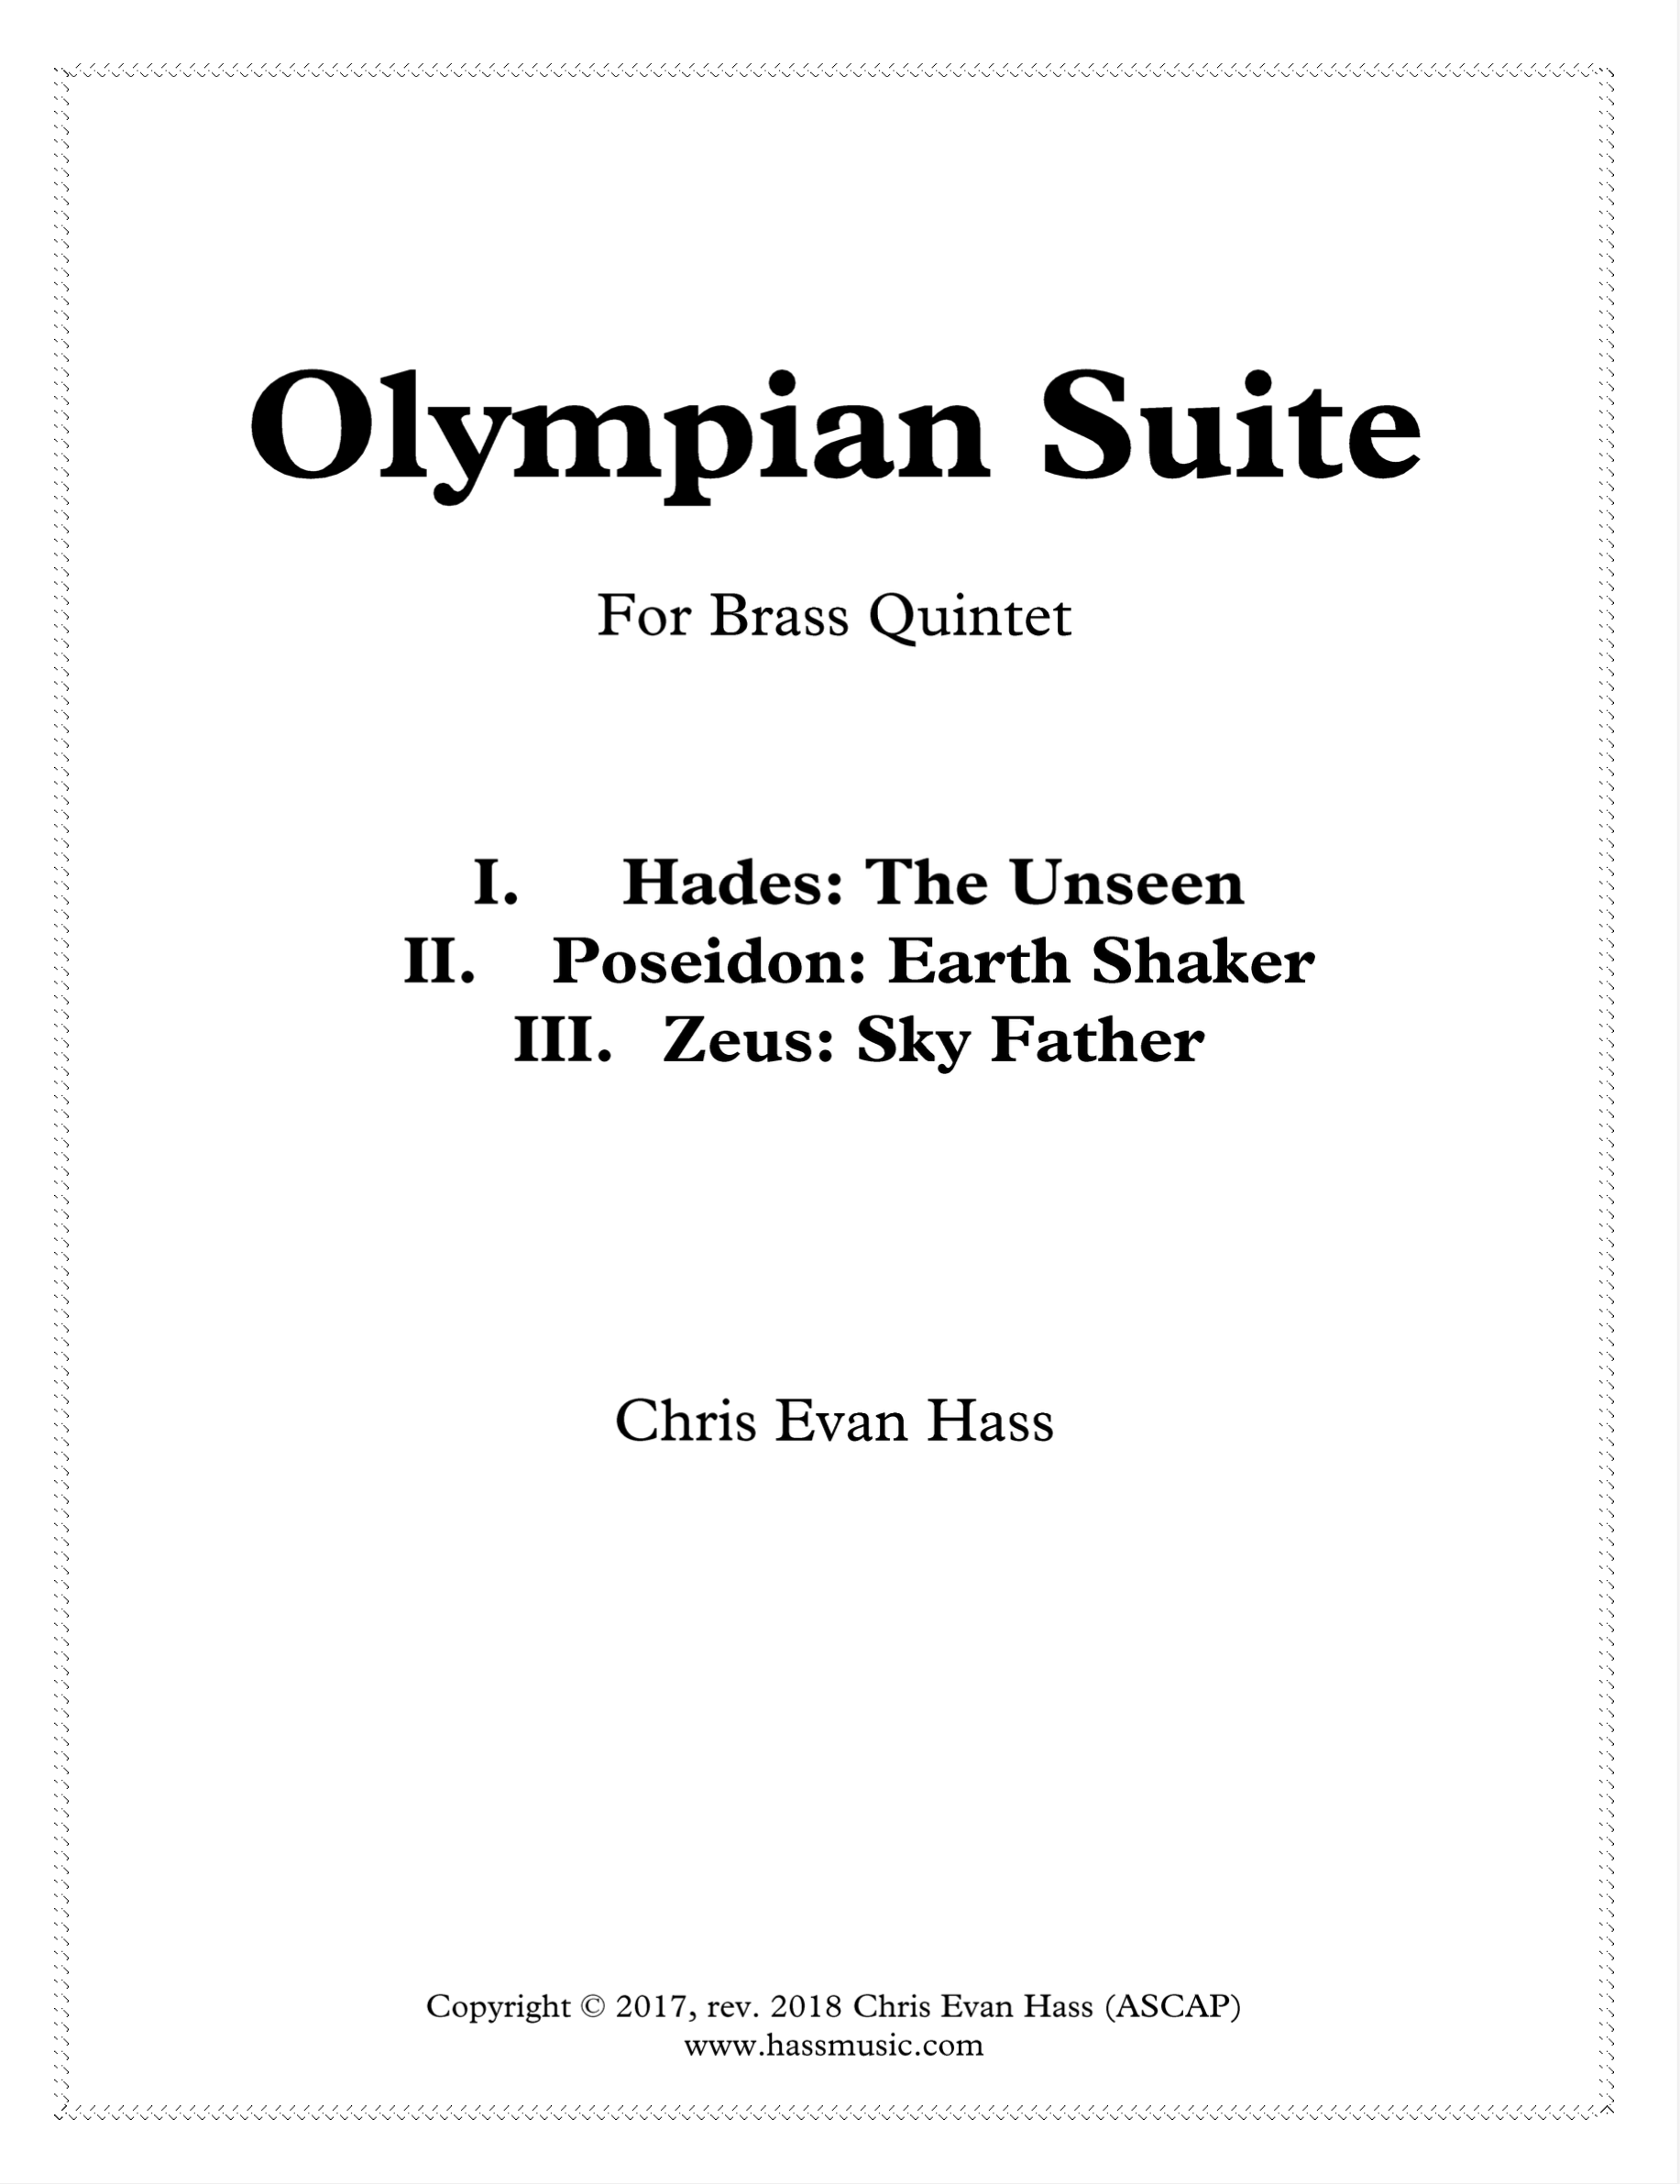 Olympian Suite by Chris Evan Hass